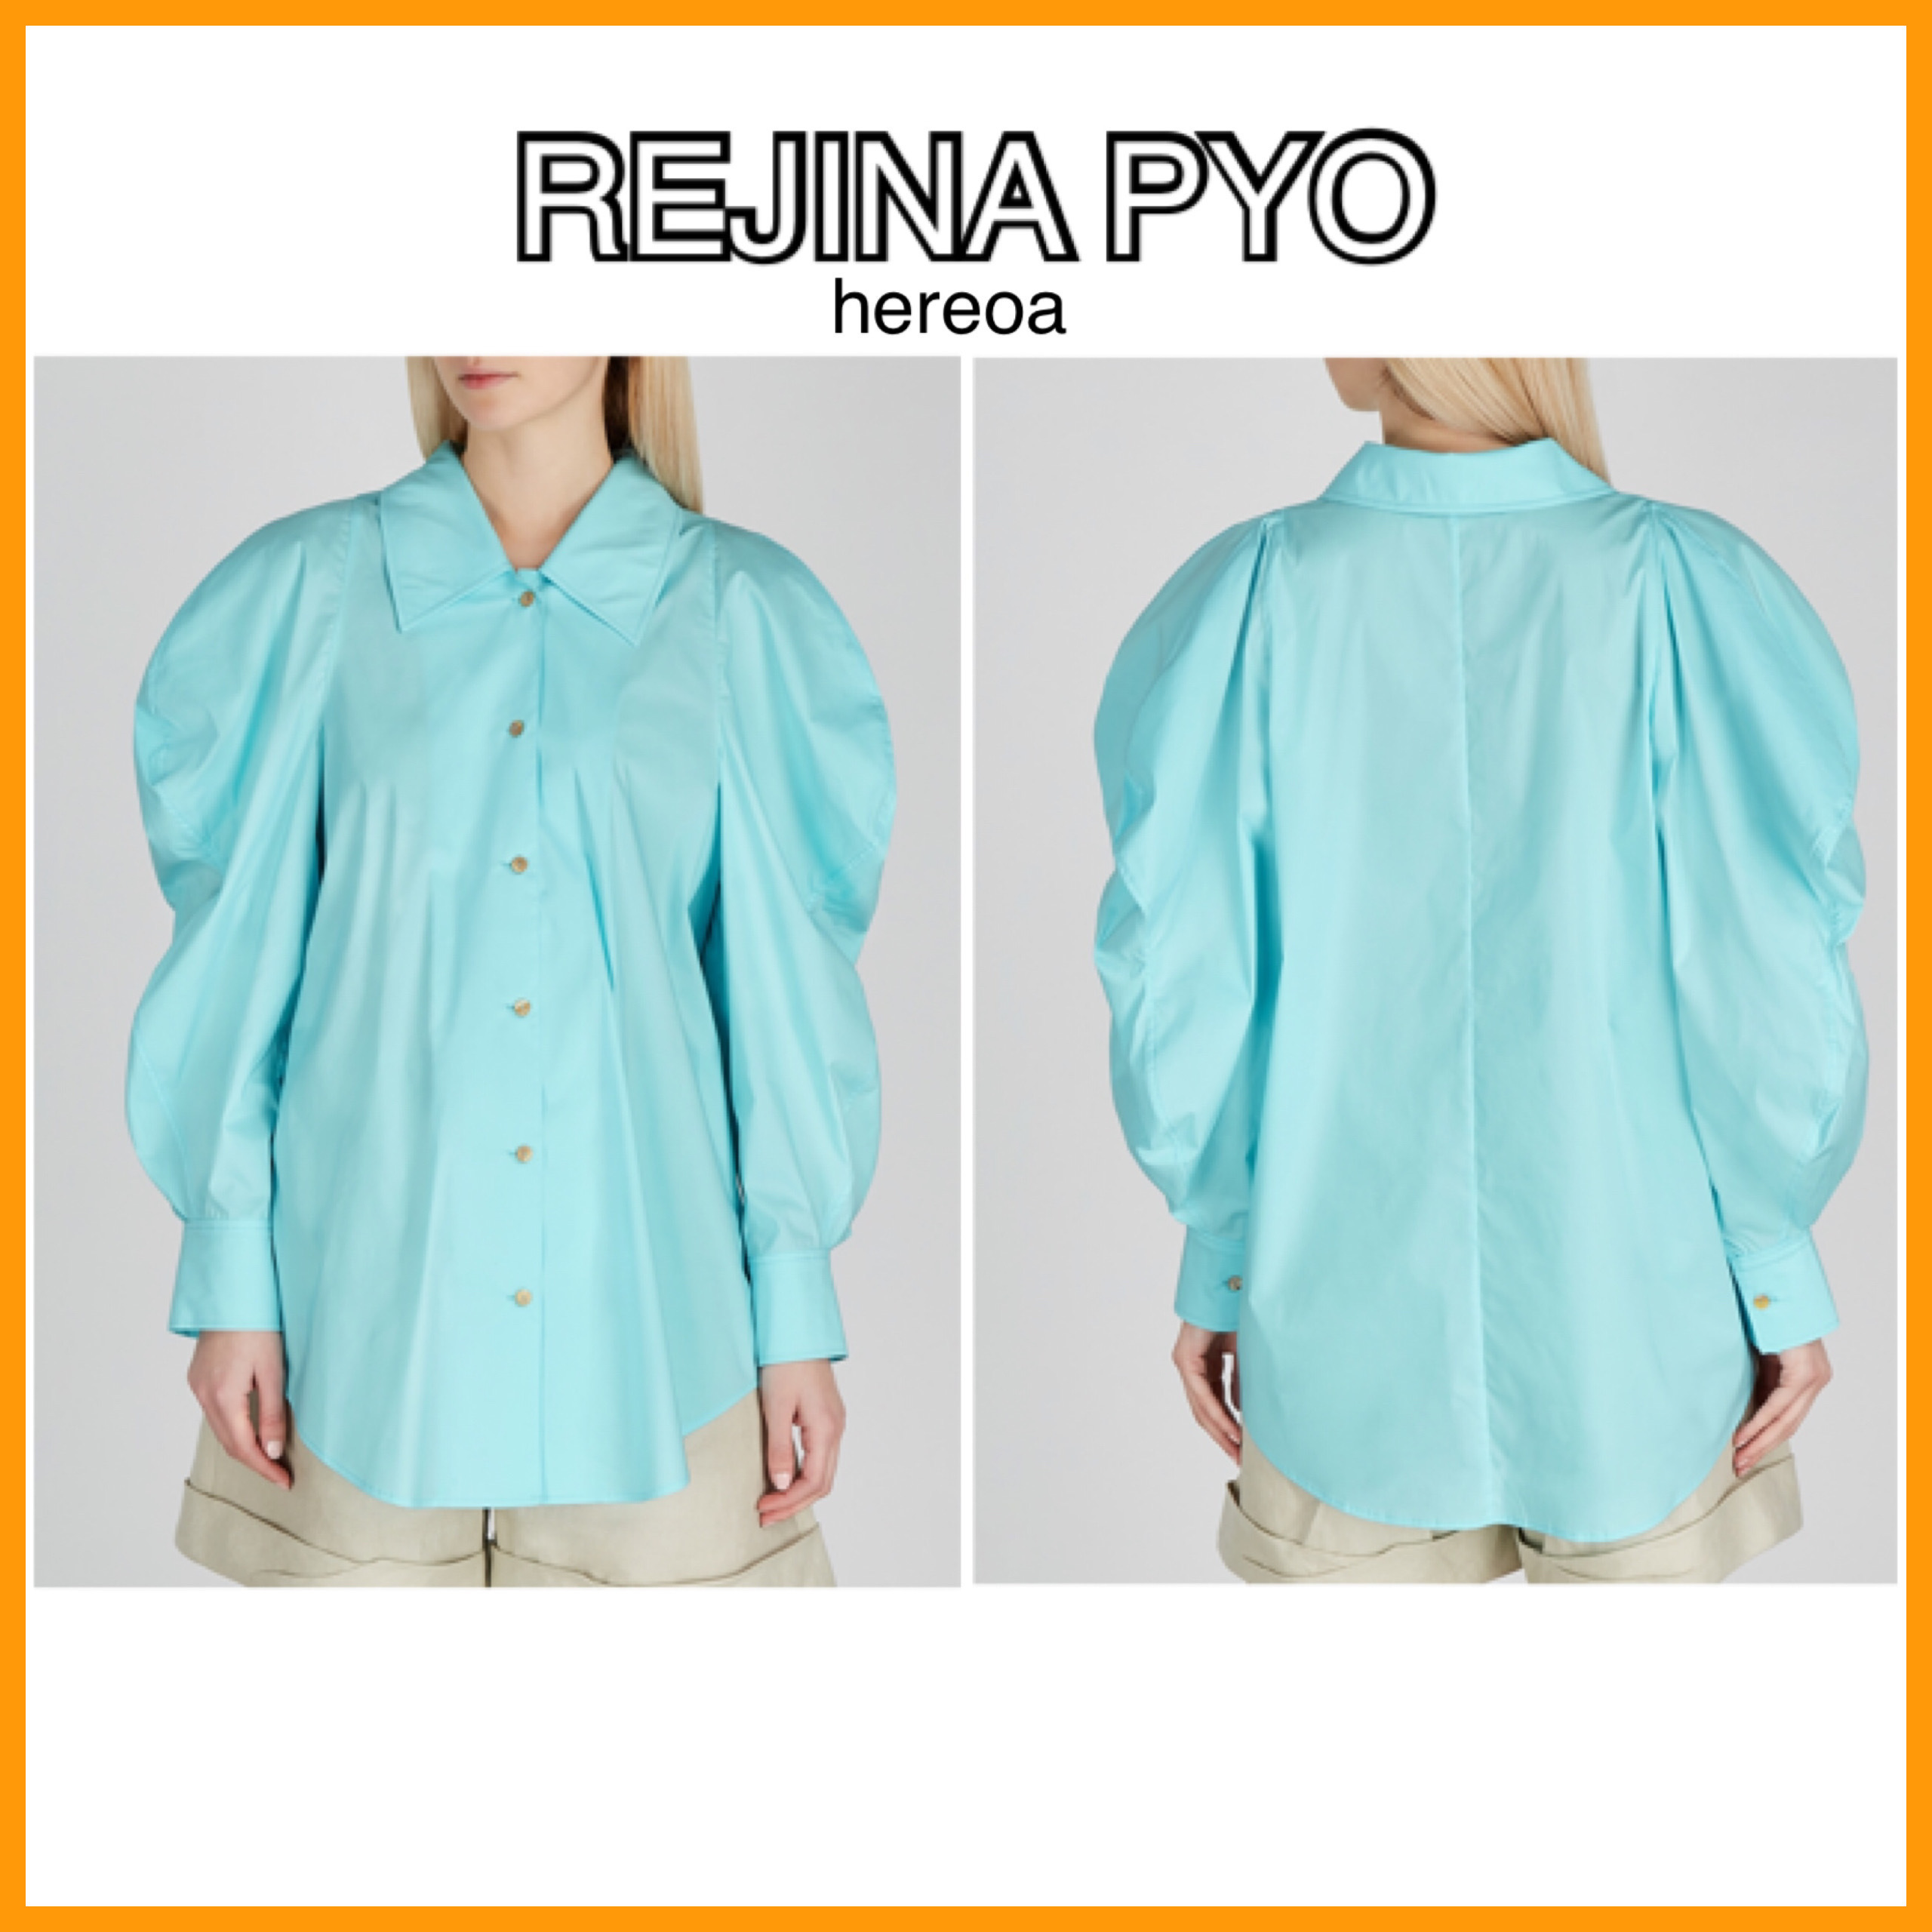 shop rejina pyo clothing